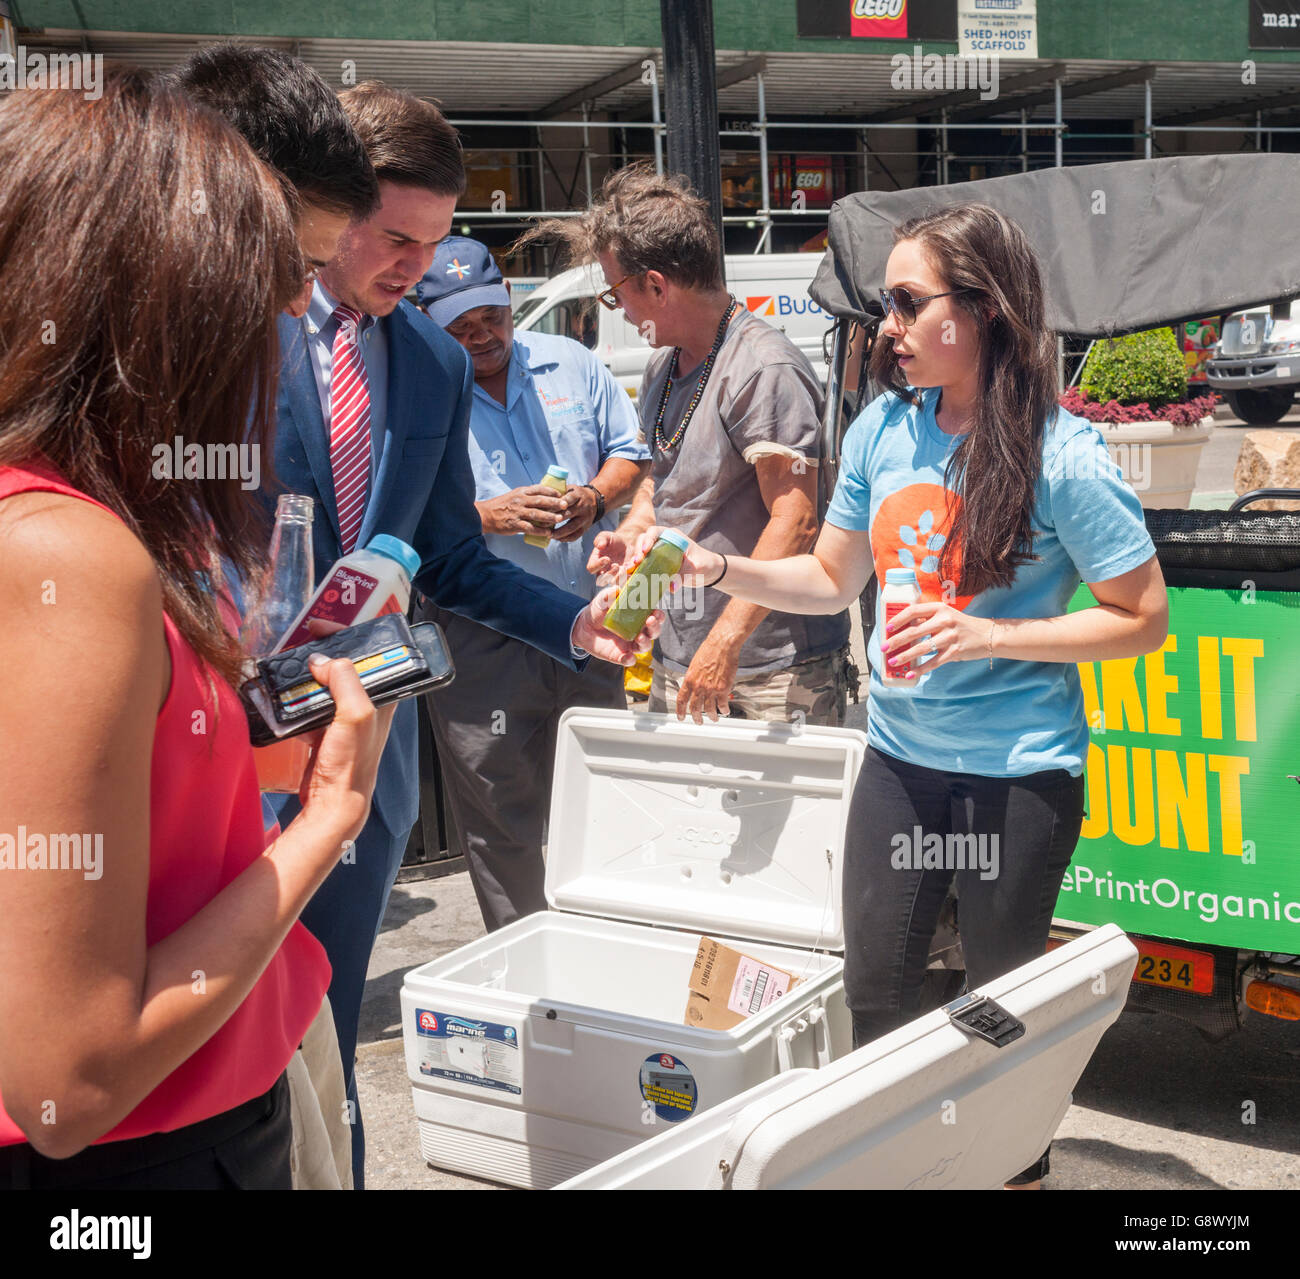 Workers give out samples of blueprint brand organic cleanse in stock workers give out samples of blueprint brand organic cleanse in flatiron plaza in new york on wednesday june 22 2016 blueprint manufactures organic juices malvernweather Choice Image